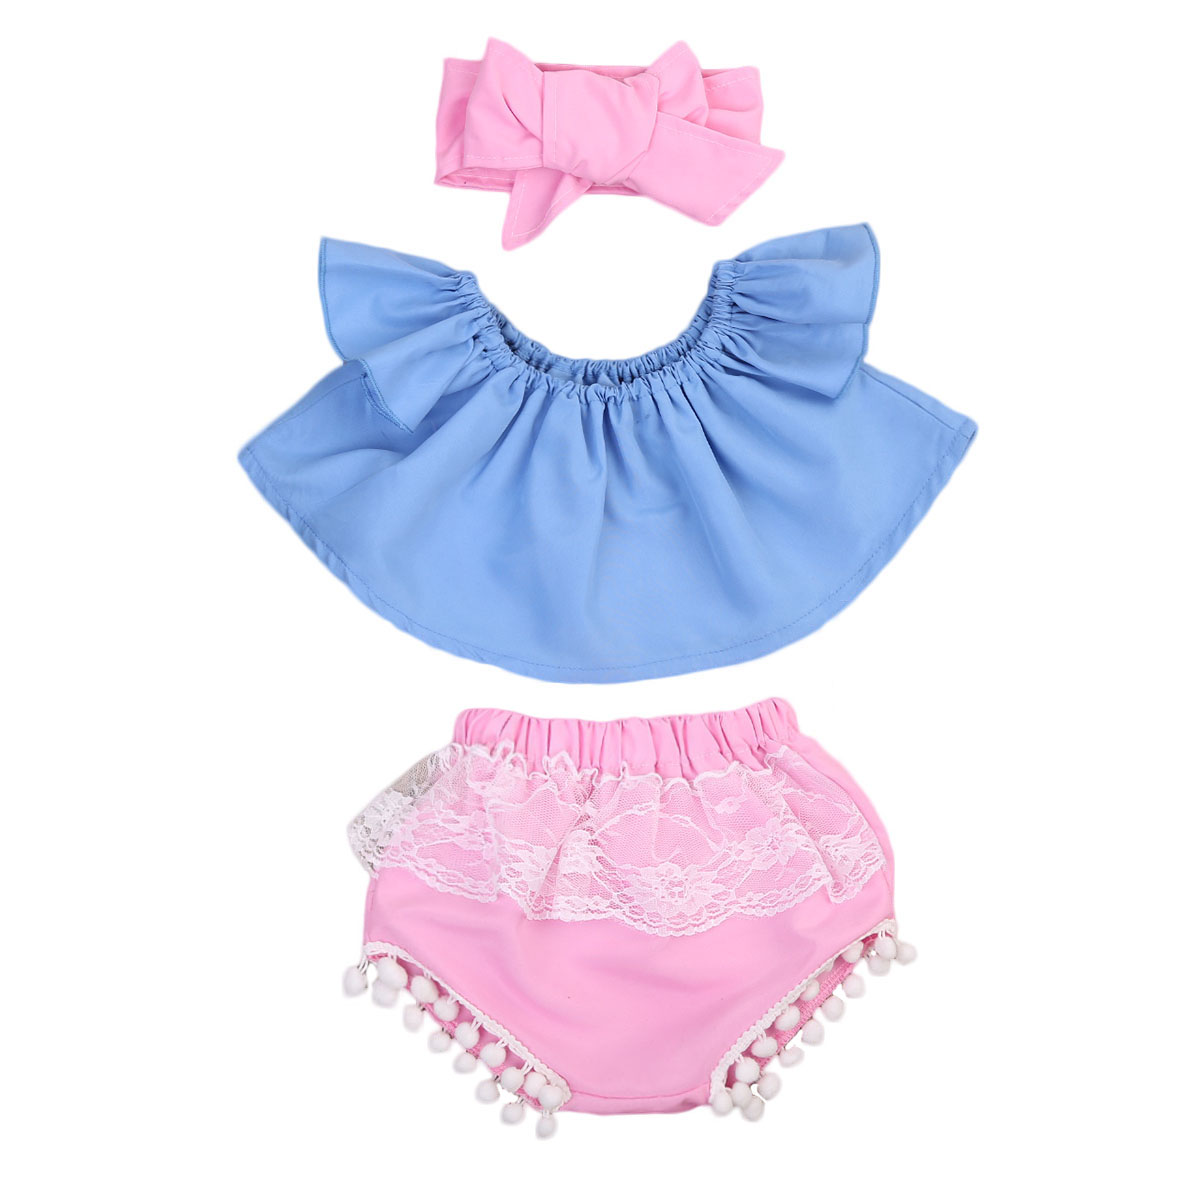 3PCS Toddler Infant Baby Girl Off Shoulder Loose Crop Tops +Lace Tassel Short Pants Outfit Summer Cotton Clothing Set Two Piece summer casual denim newborn toddler baby girl clothing kids off shoulder crop tops shorts outfit clothes set